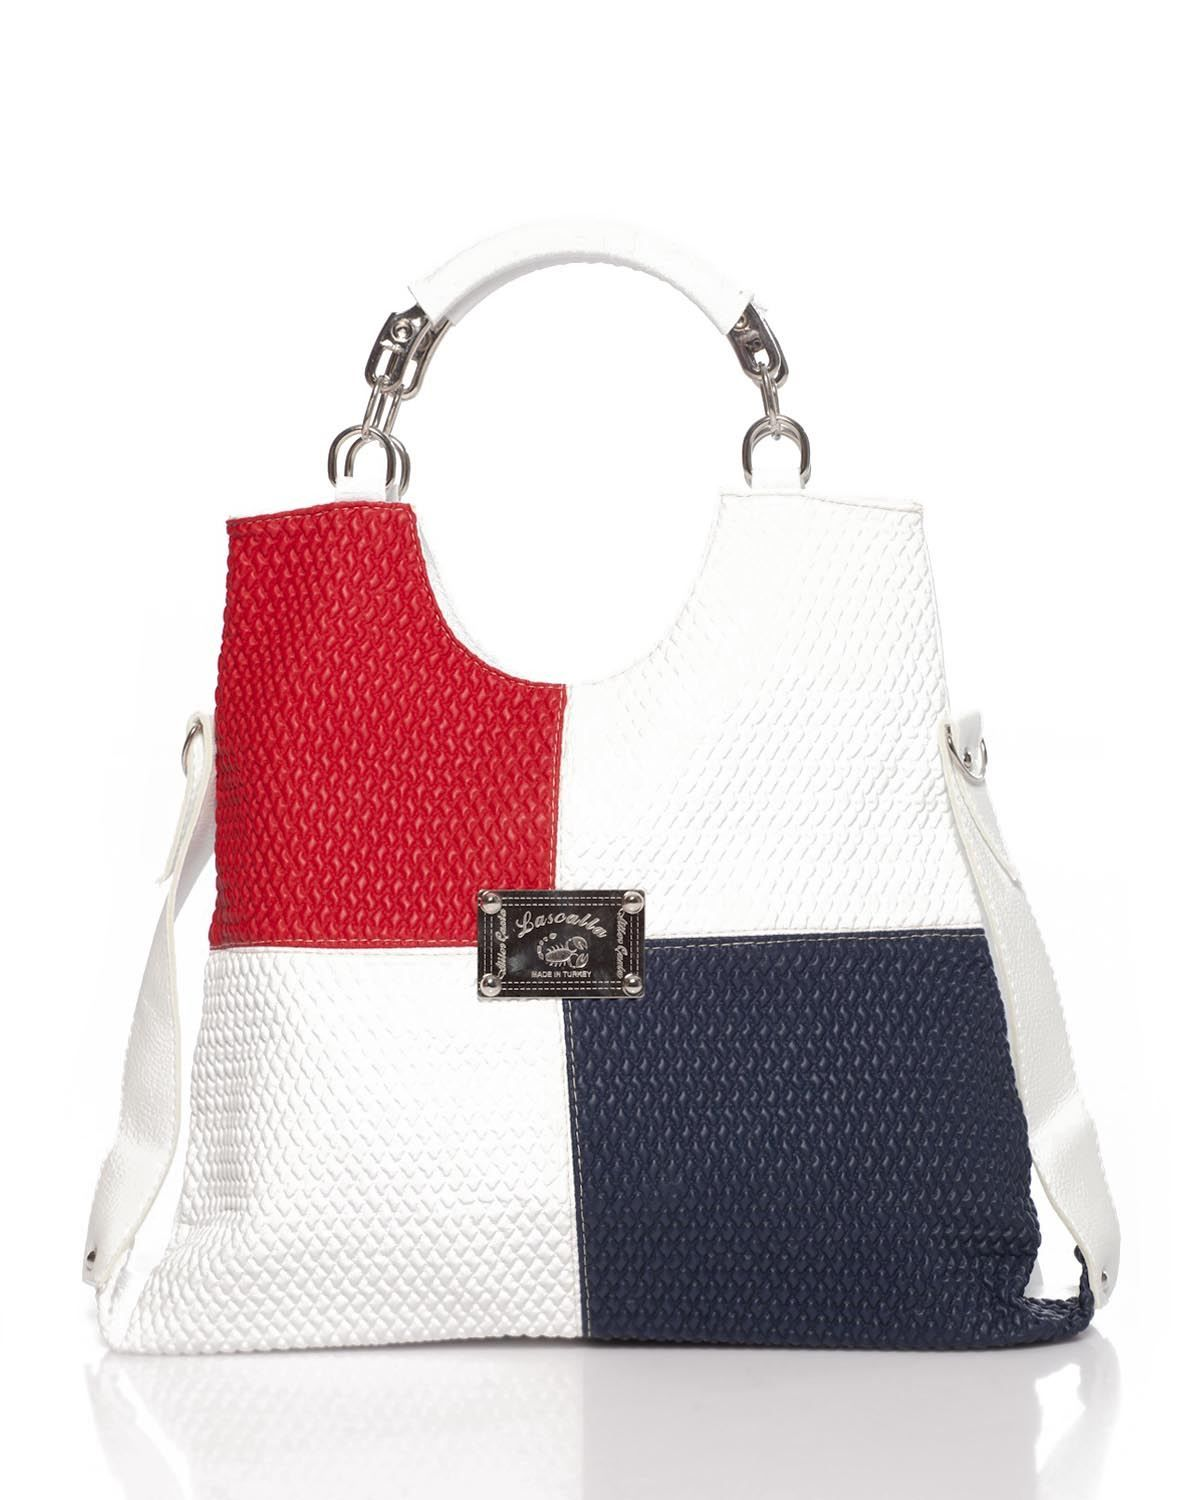 DAS Tote for $29 at Modnique. Start shopping now and save 63%. Flexible return policy, 24/7 client support, authenticity guaranteed